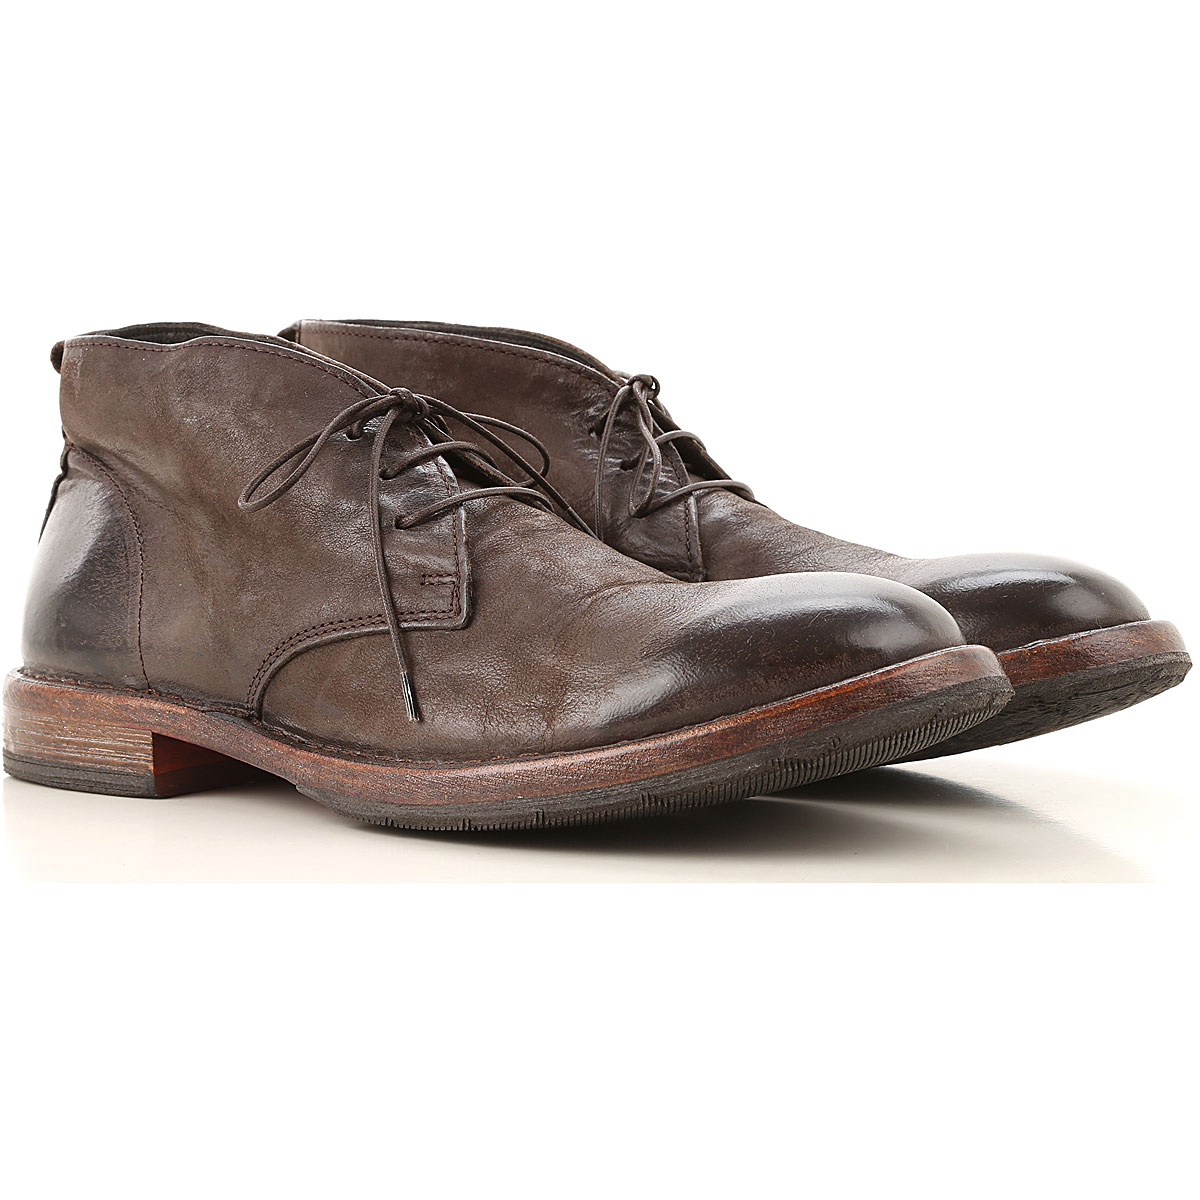 Moma Lace Up Shoes for Men Oxfords, Derbies and Brogues On Sale, Coffee, Leather, 2019, 10.5 9